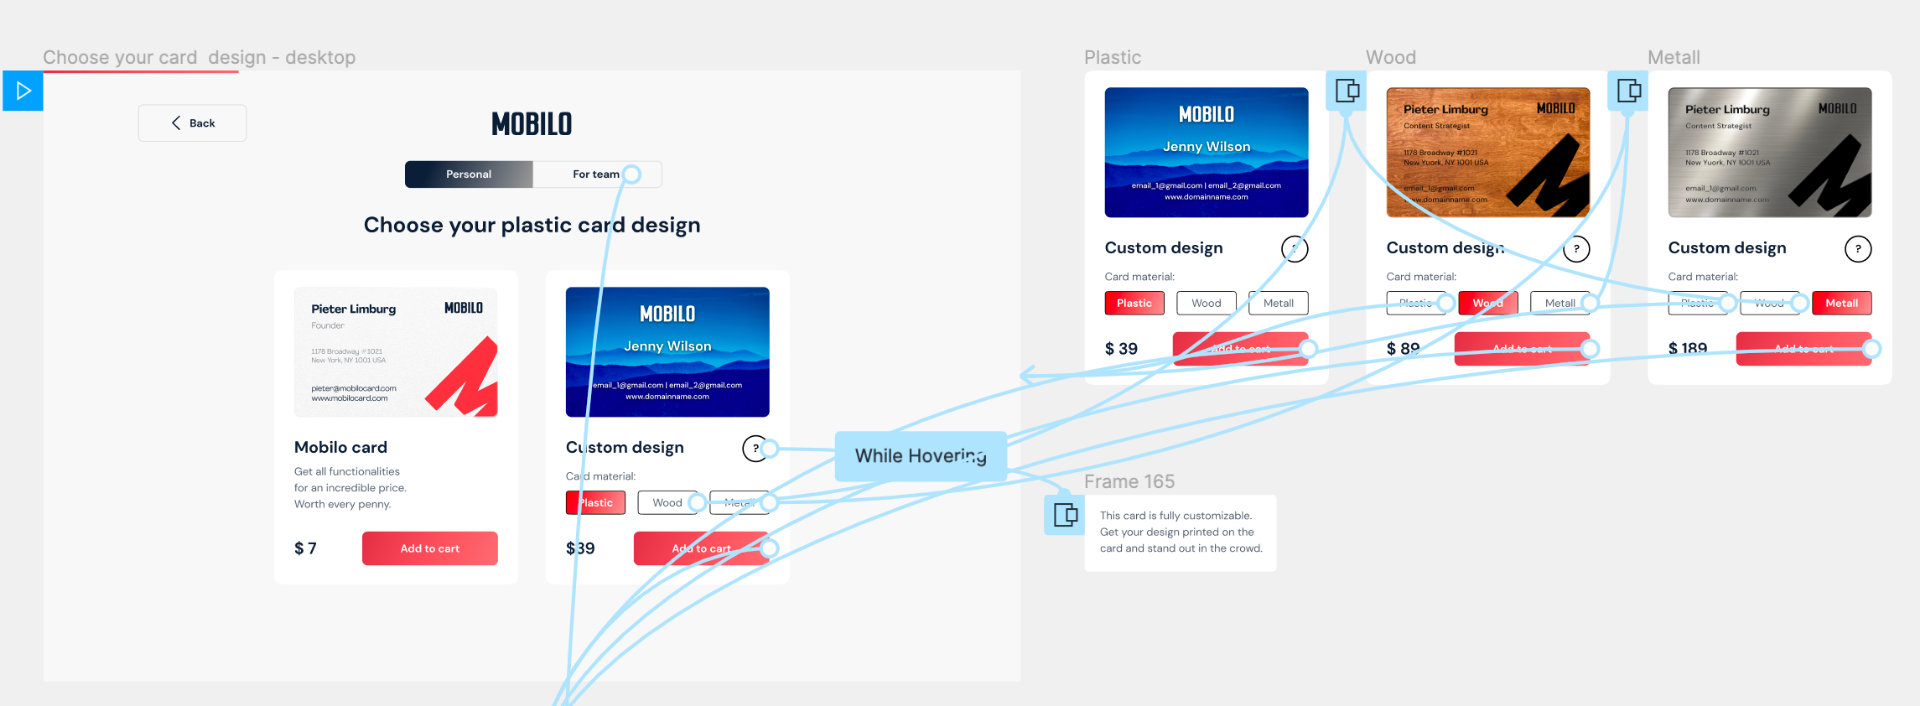 We create a black and white UX prototype based on the research insights and documentation created on the previous steps.